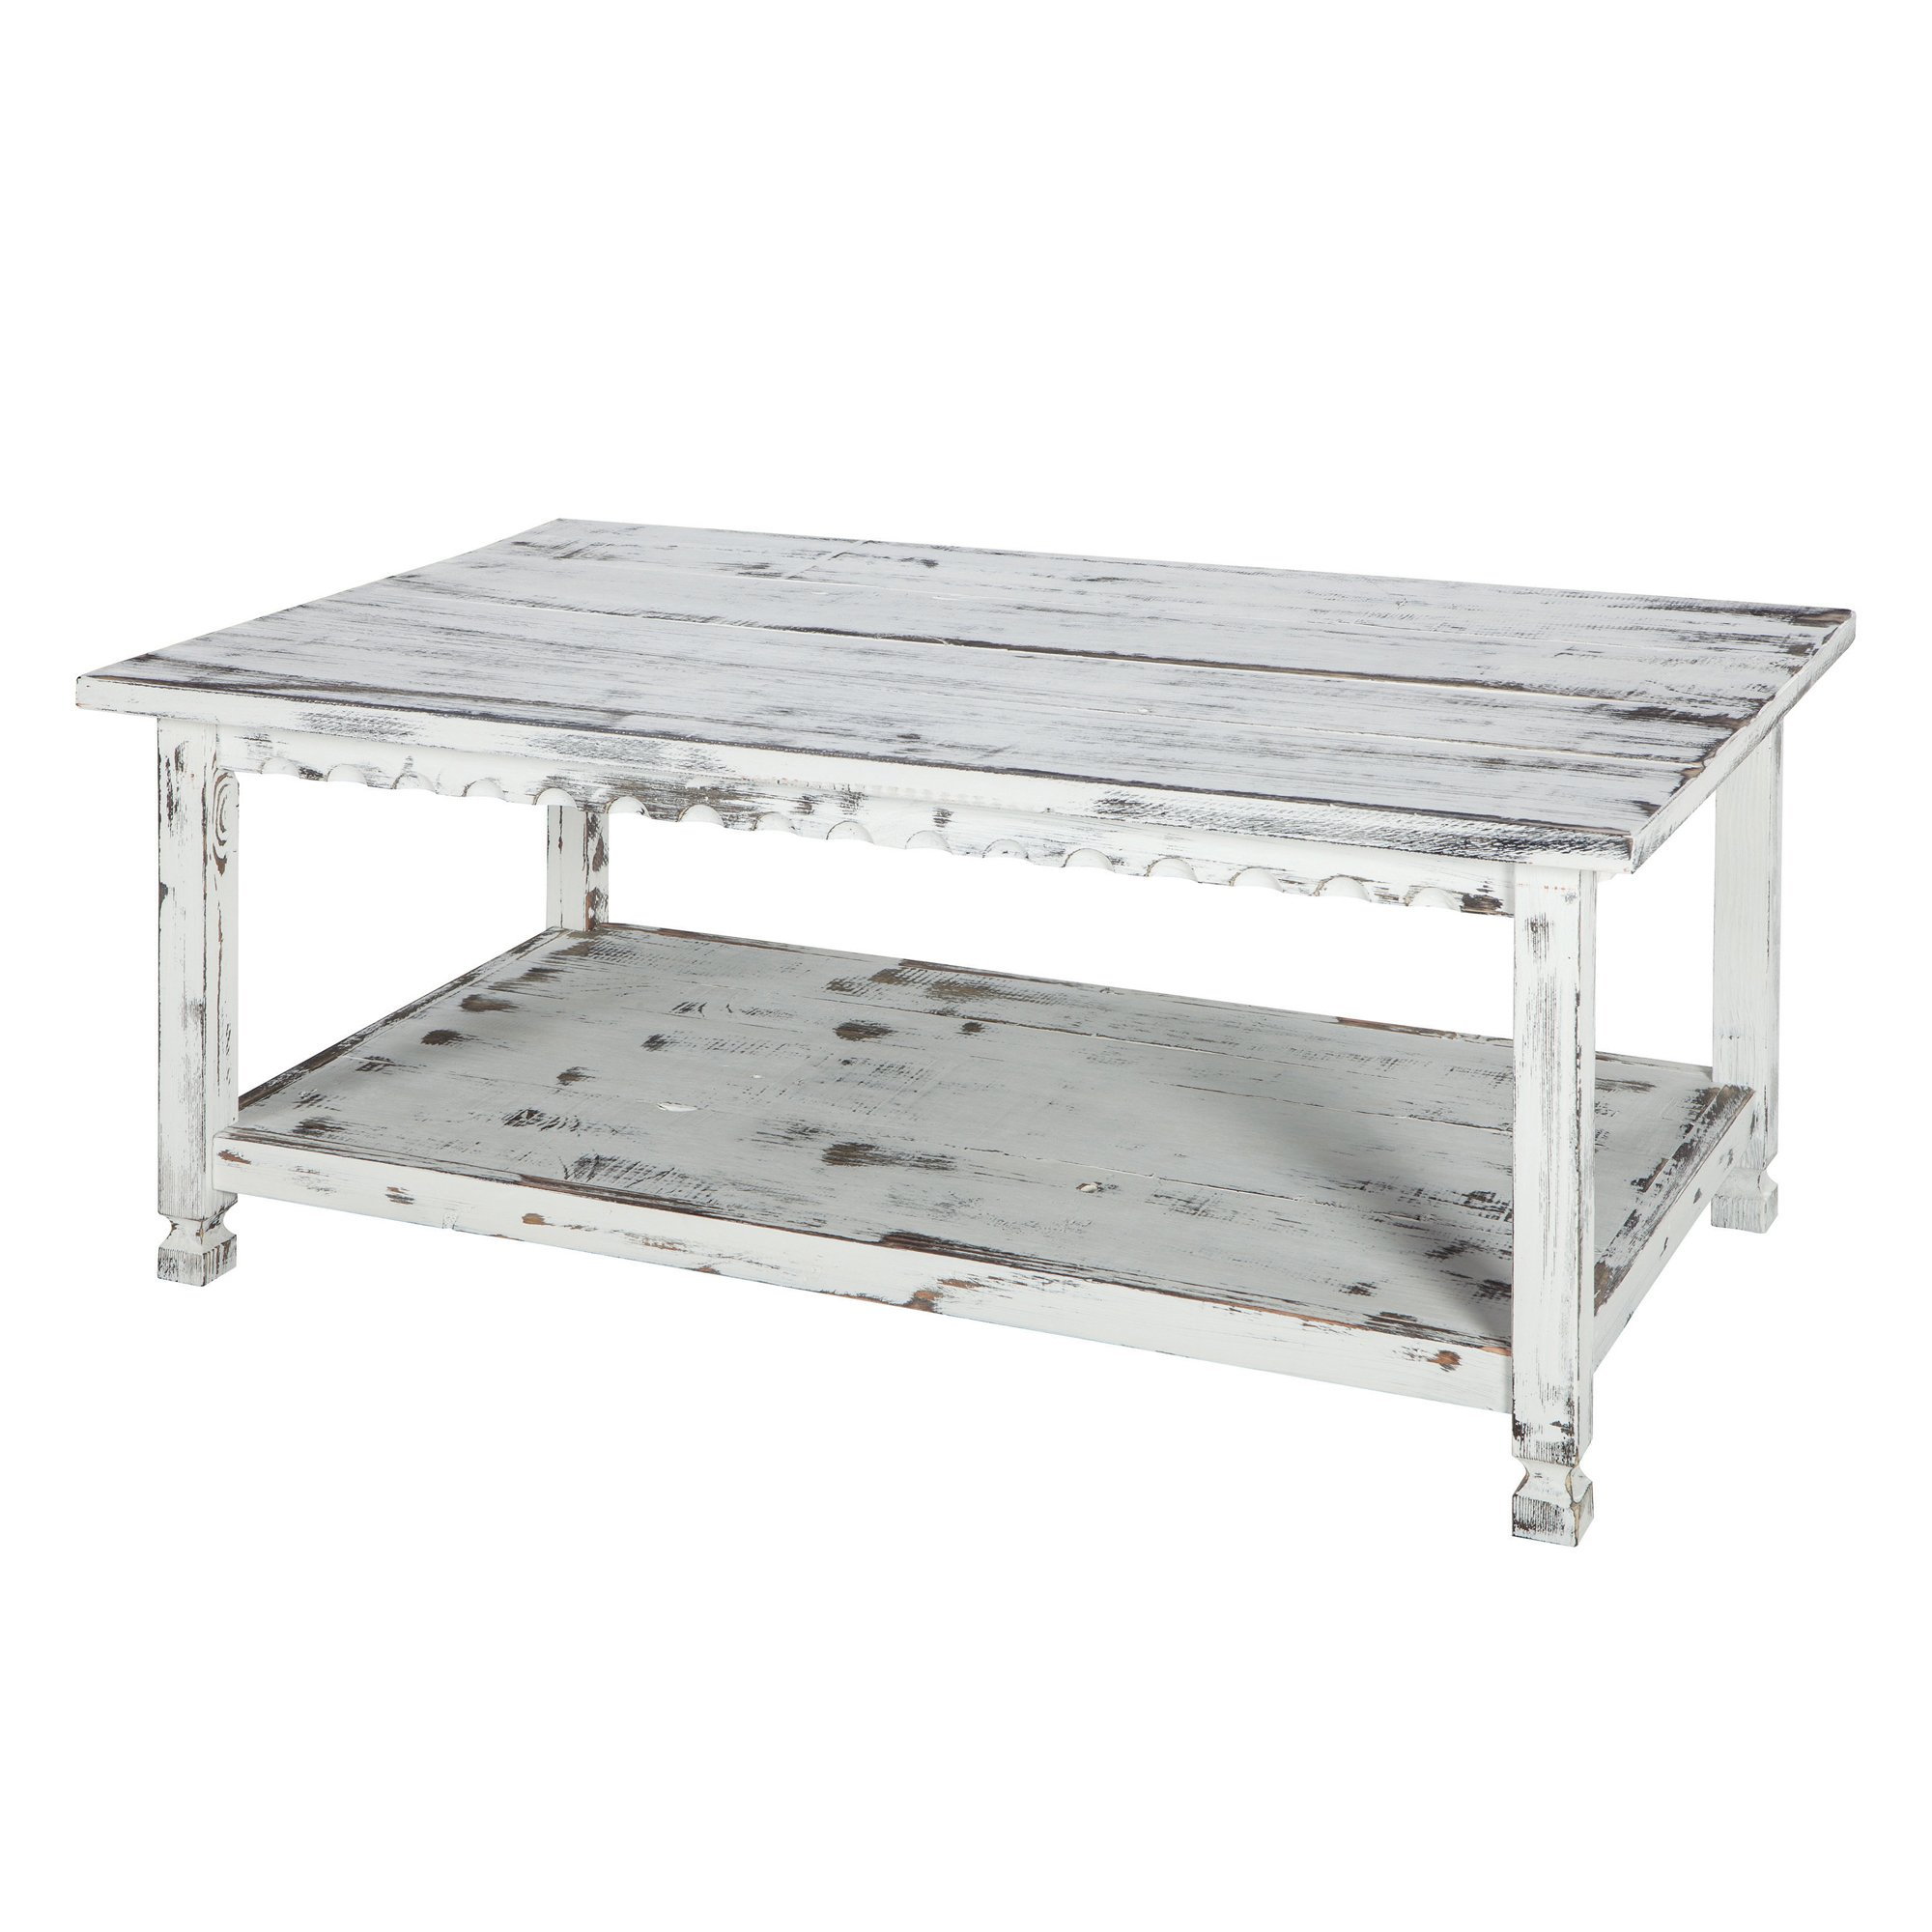 - Rustic Rectangluar Coffee Table With 1 Shelf, White Antique - Buy